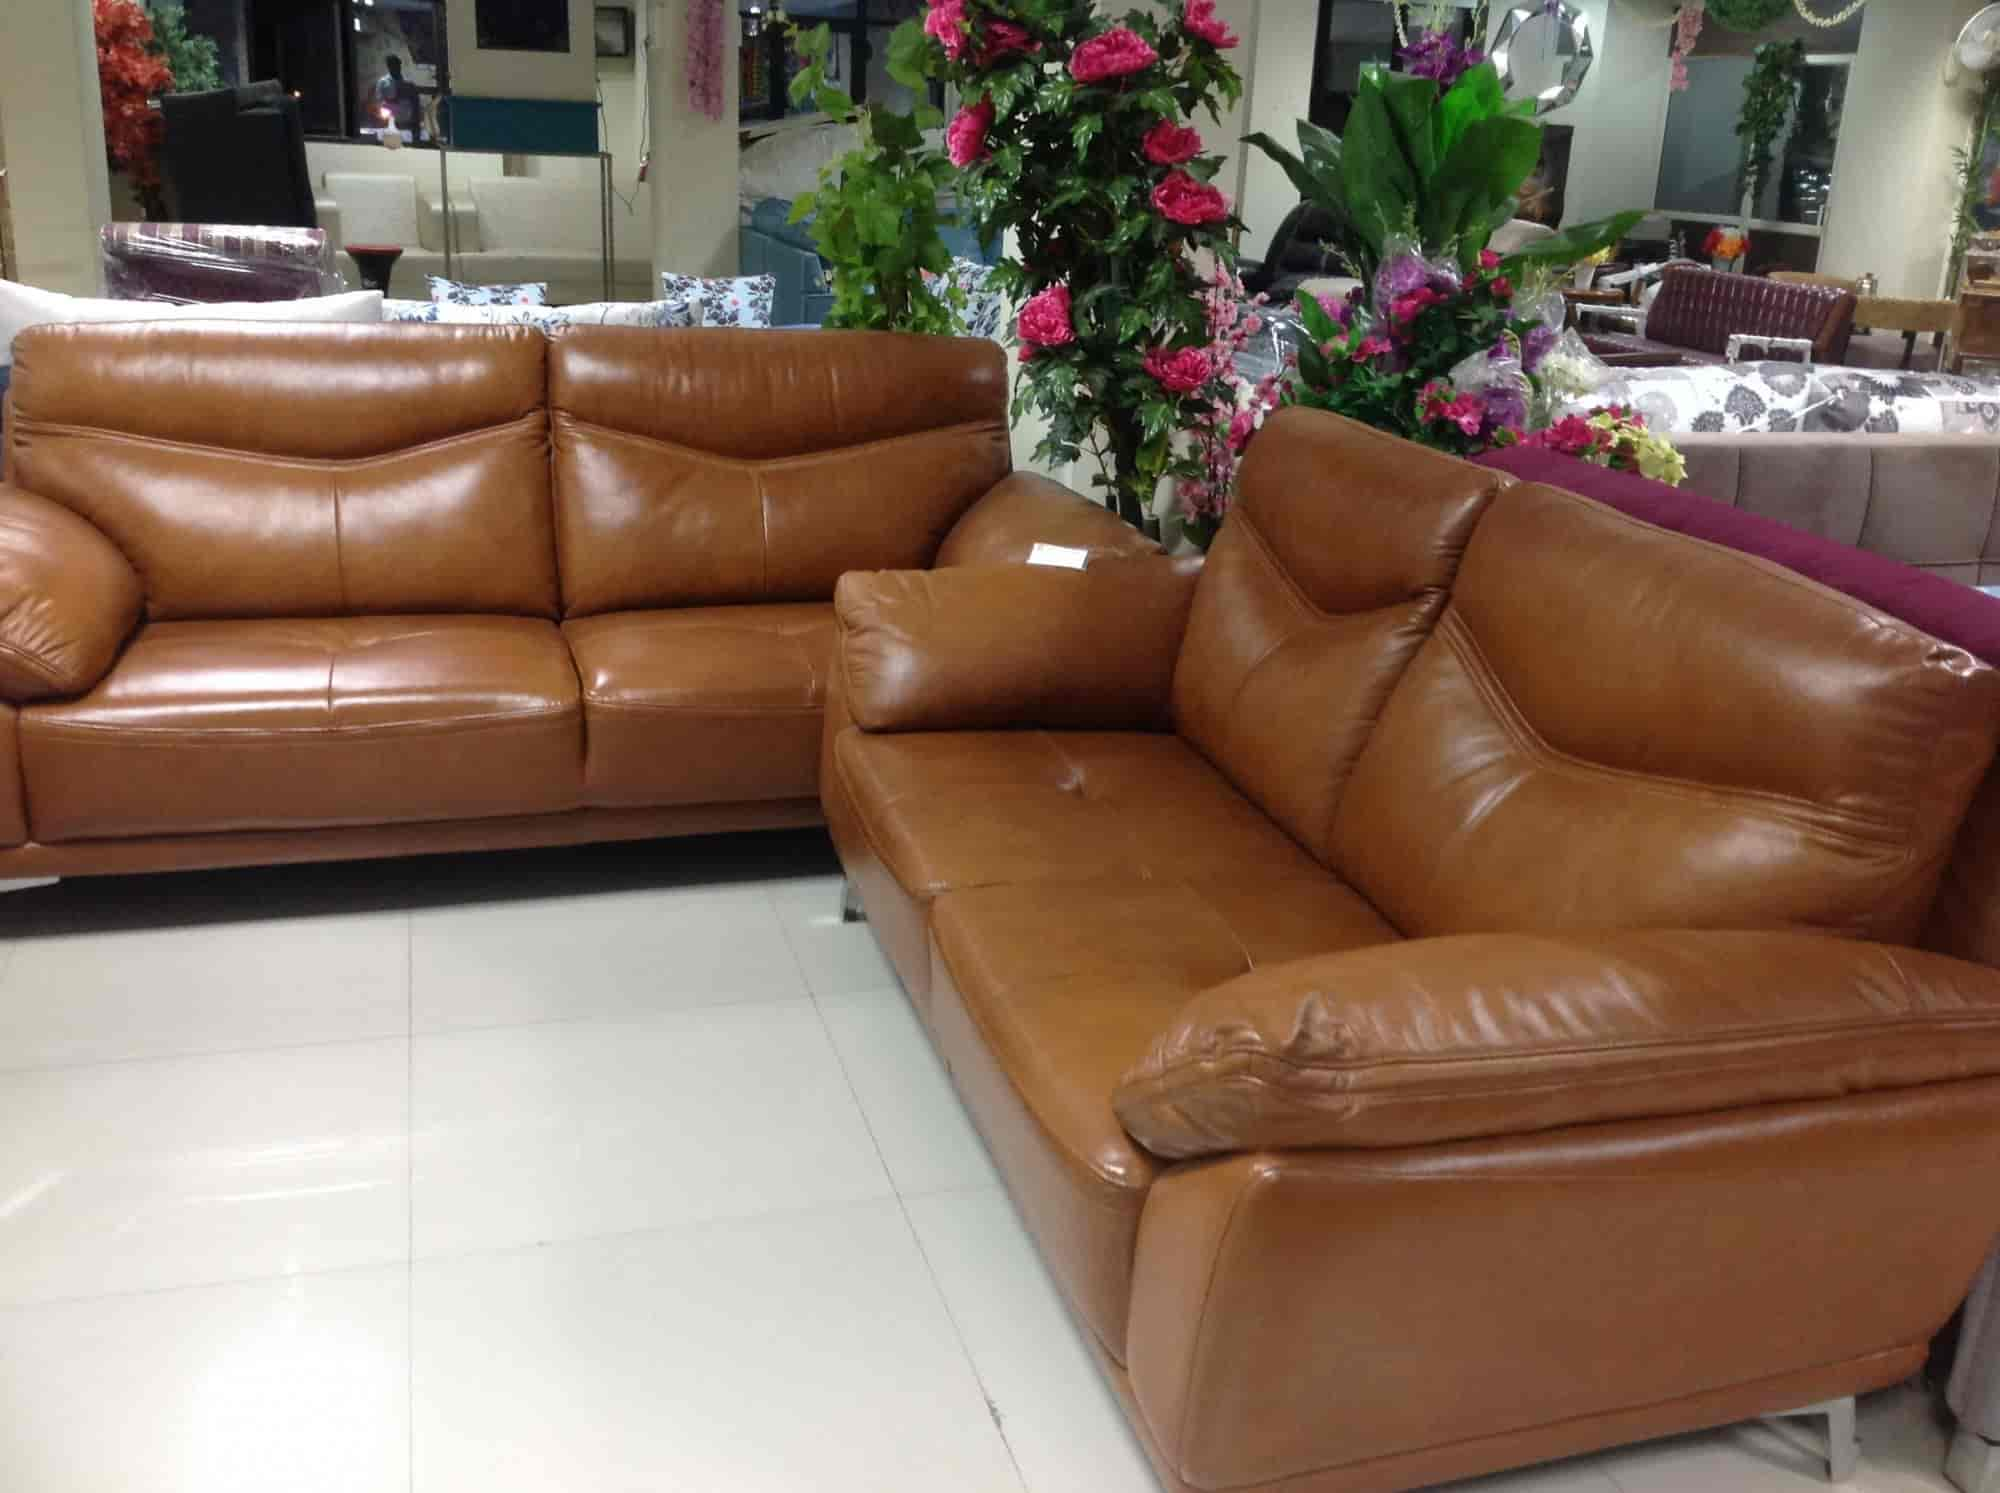 Chavan Furniture Bijapur Road Sholapur Furniture Dealers in